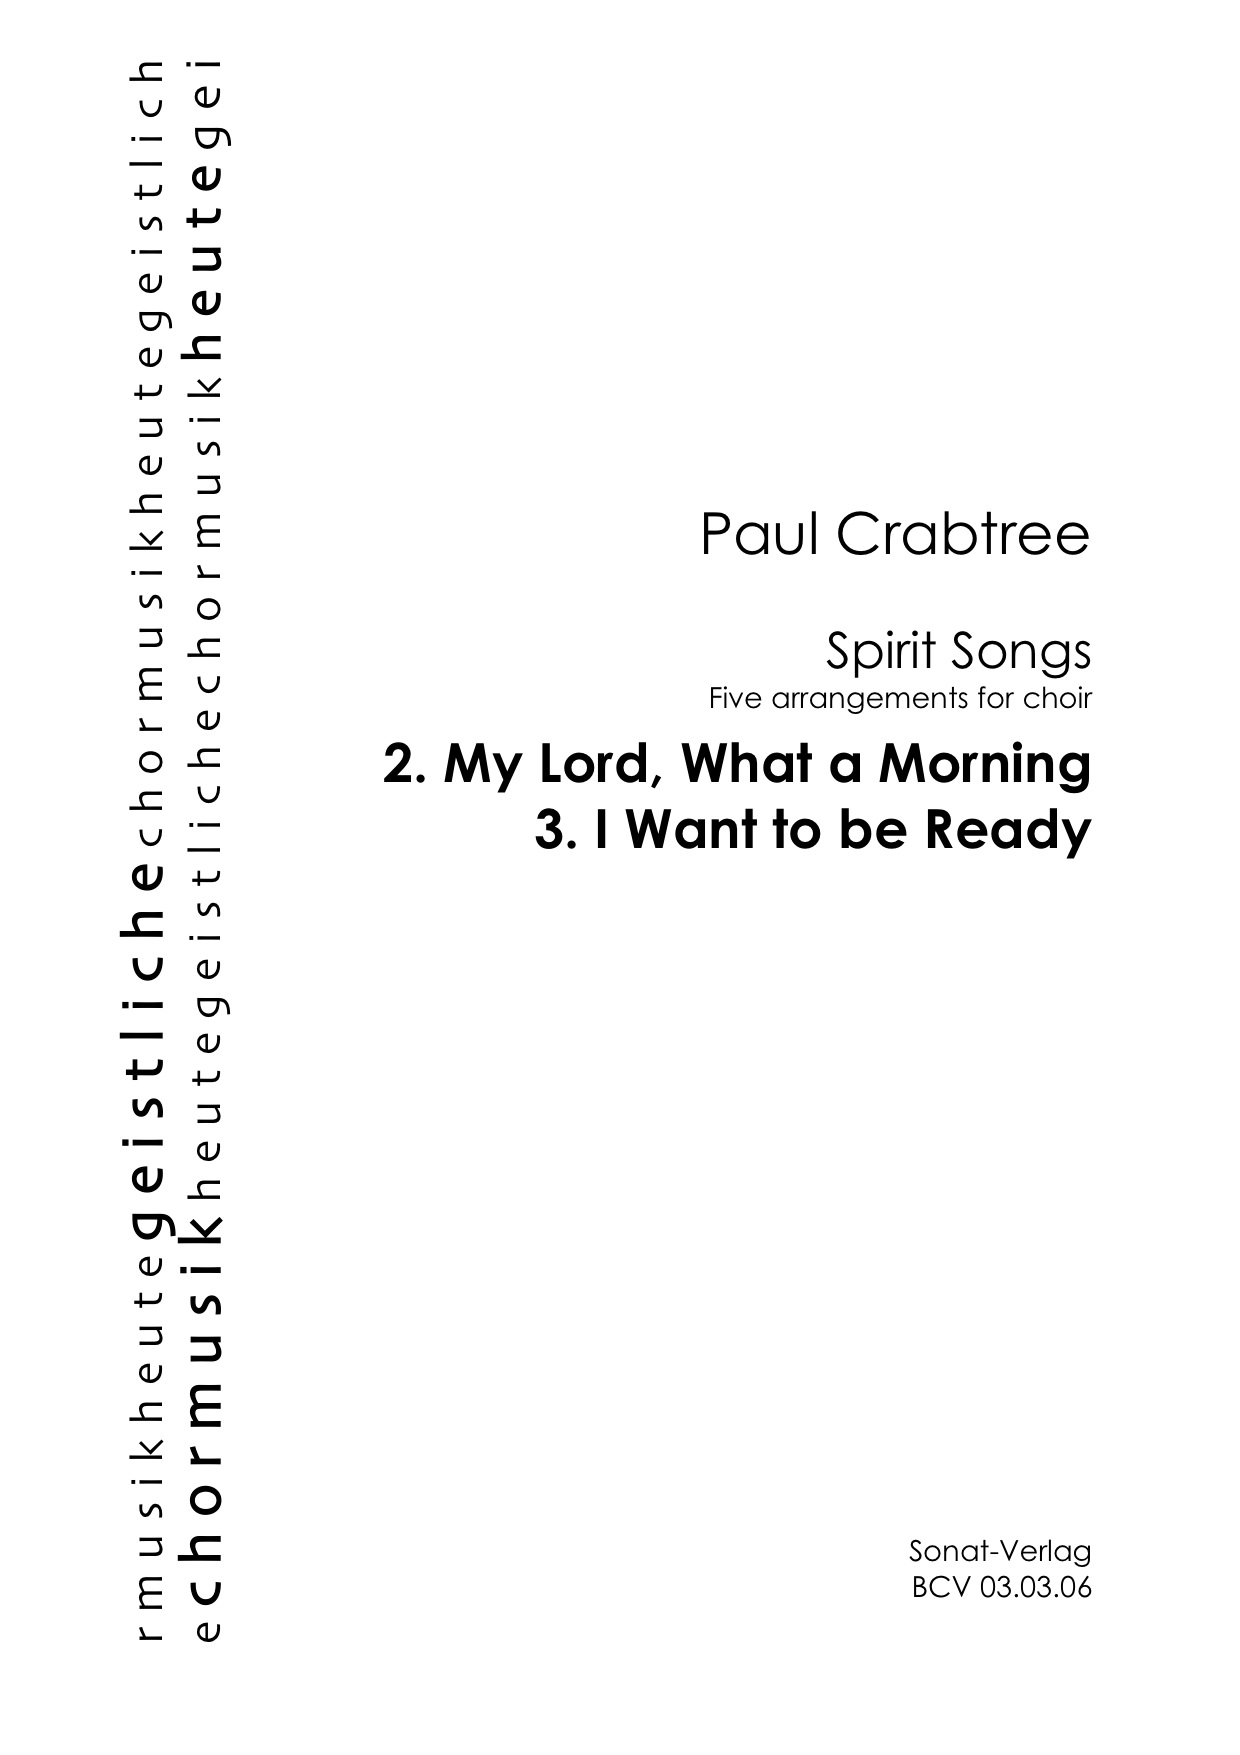 My Lord, What a Morning; I Want to be Ready